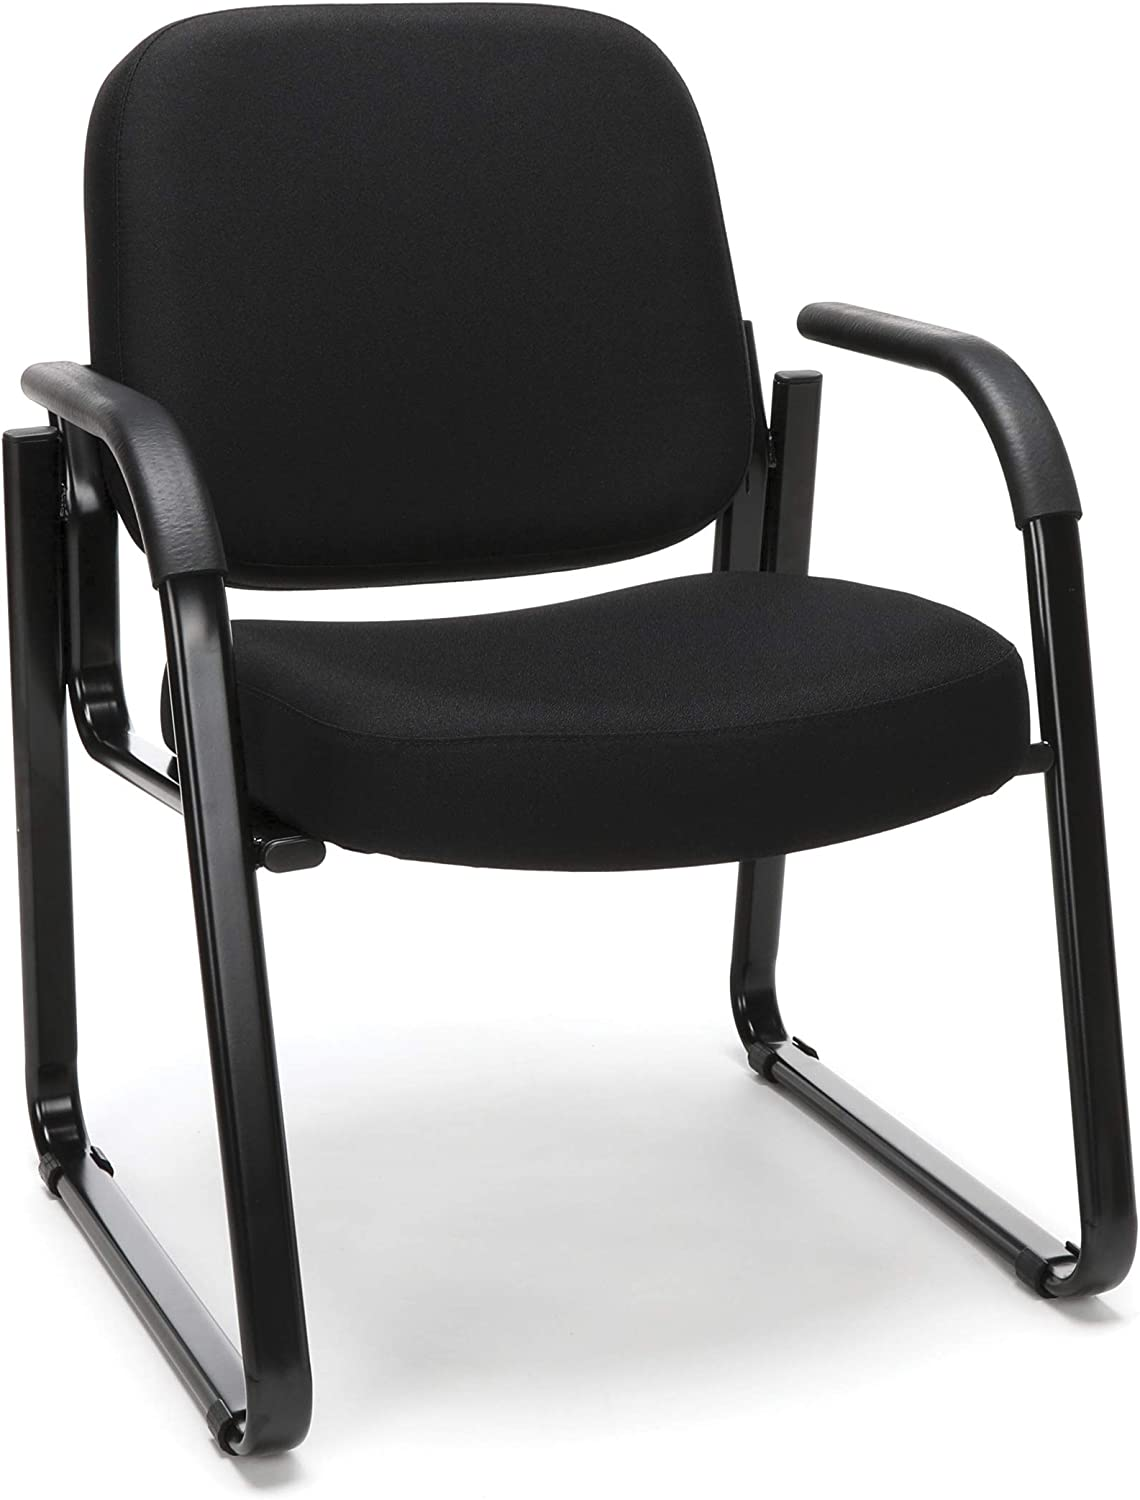 OFM Core Collection Fabric Guest and Reception Chair with Arms and Extra Thick Cushion, in Black